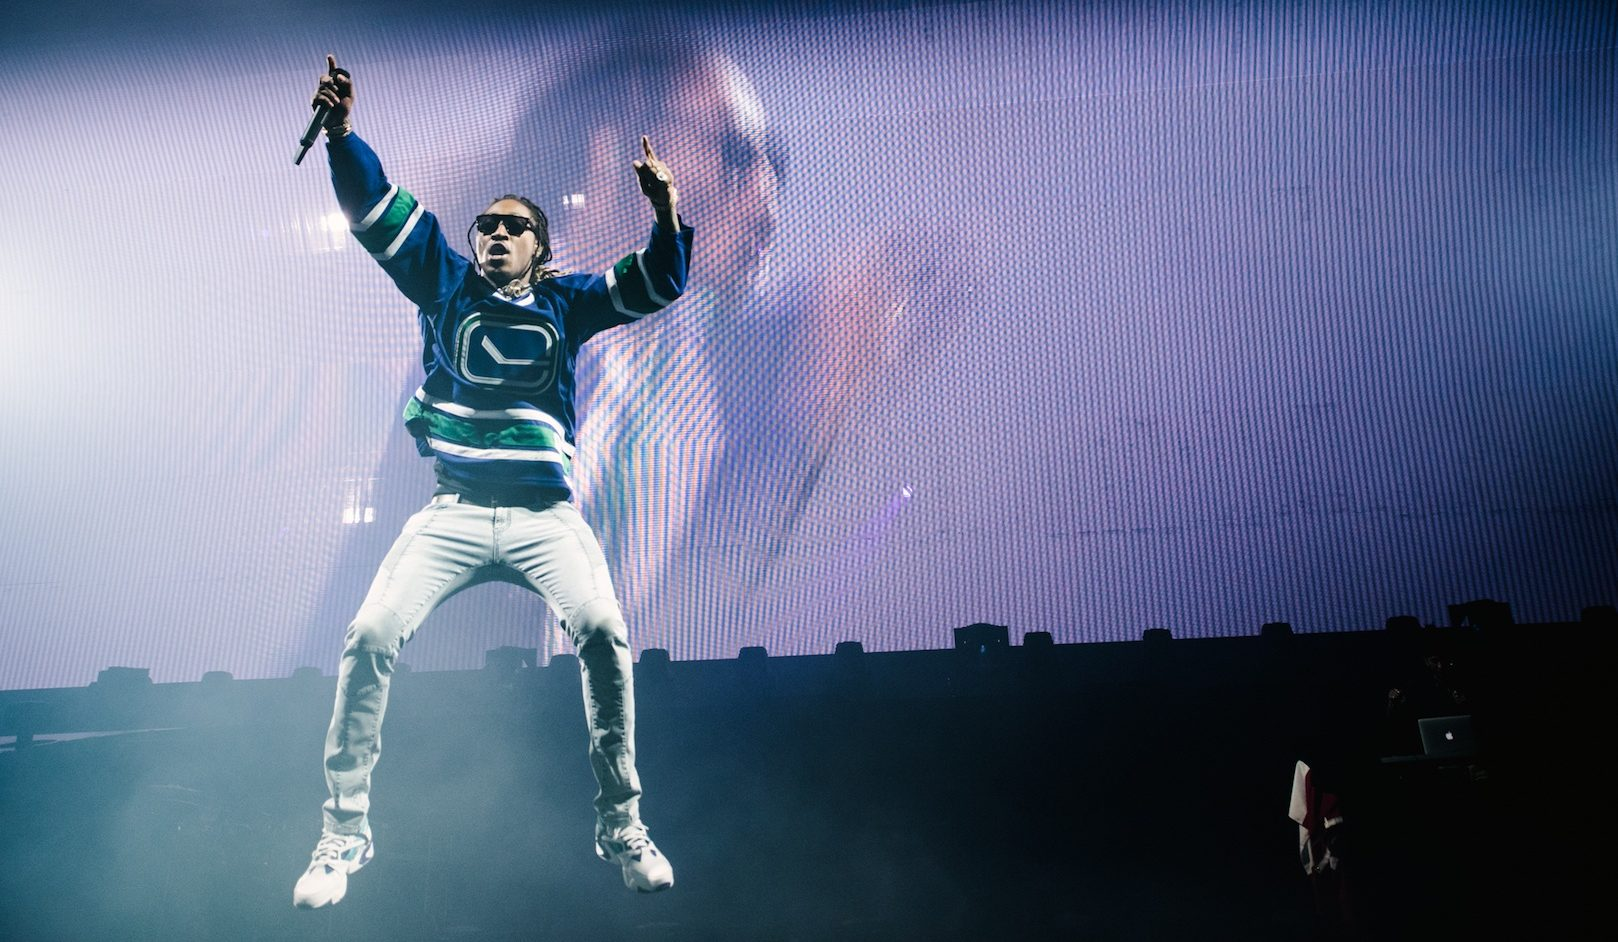 Future Vancouver 2017 concert at Rogers Arena